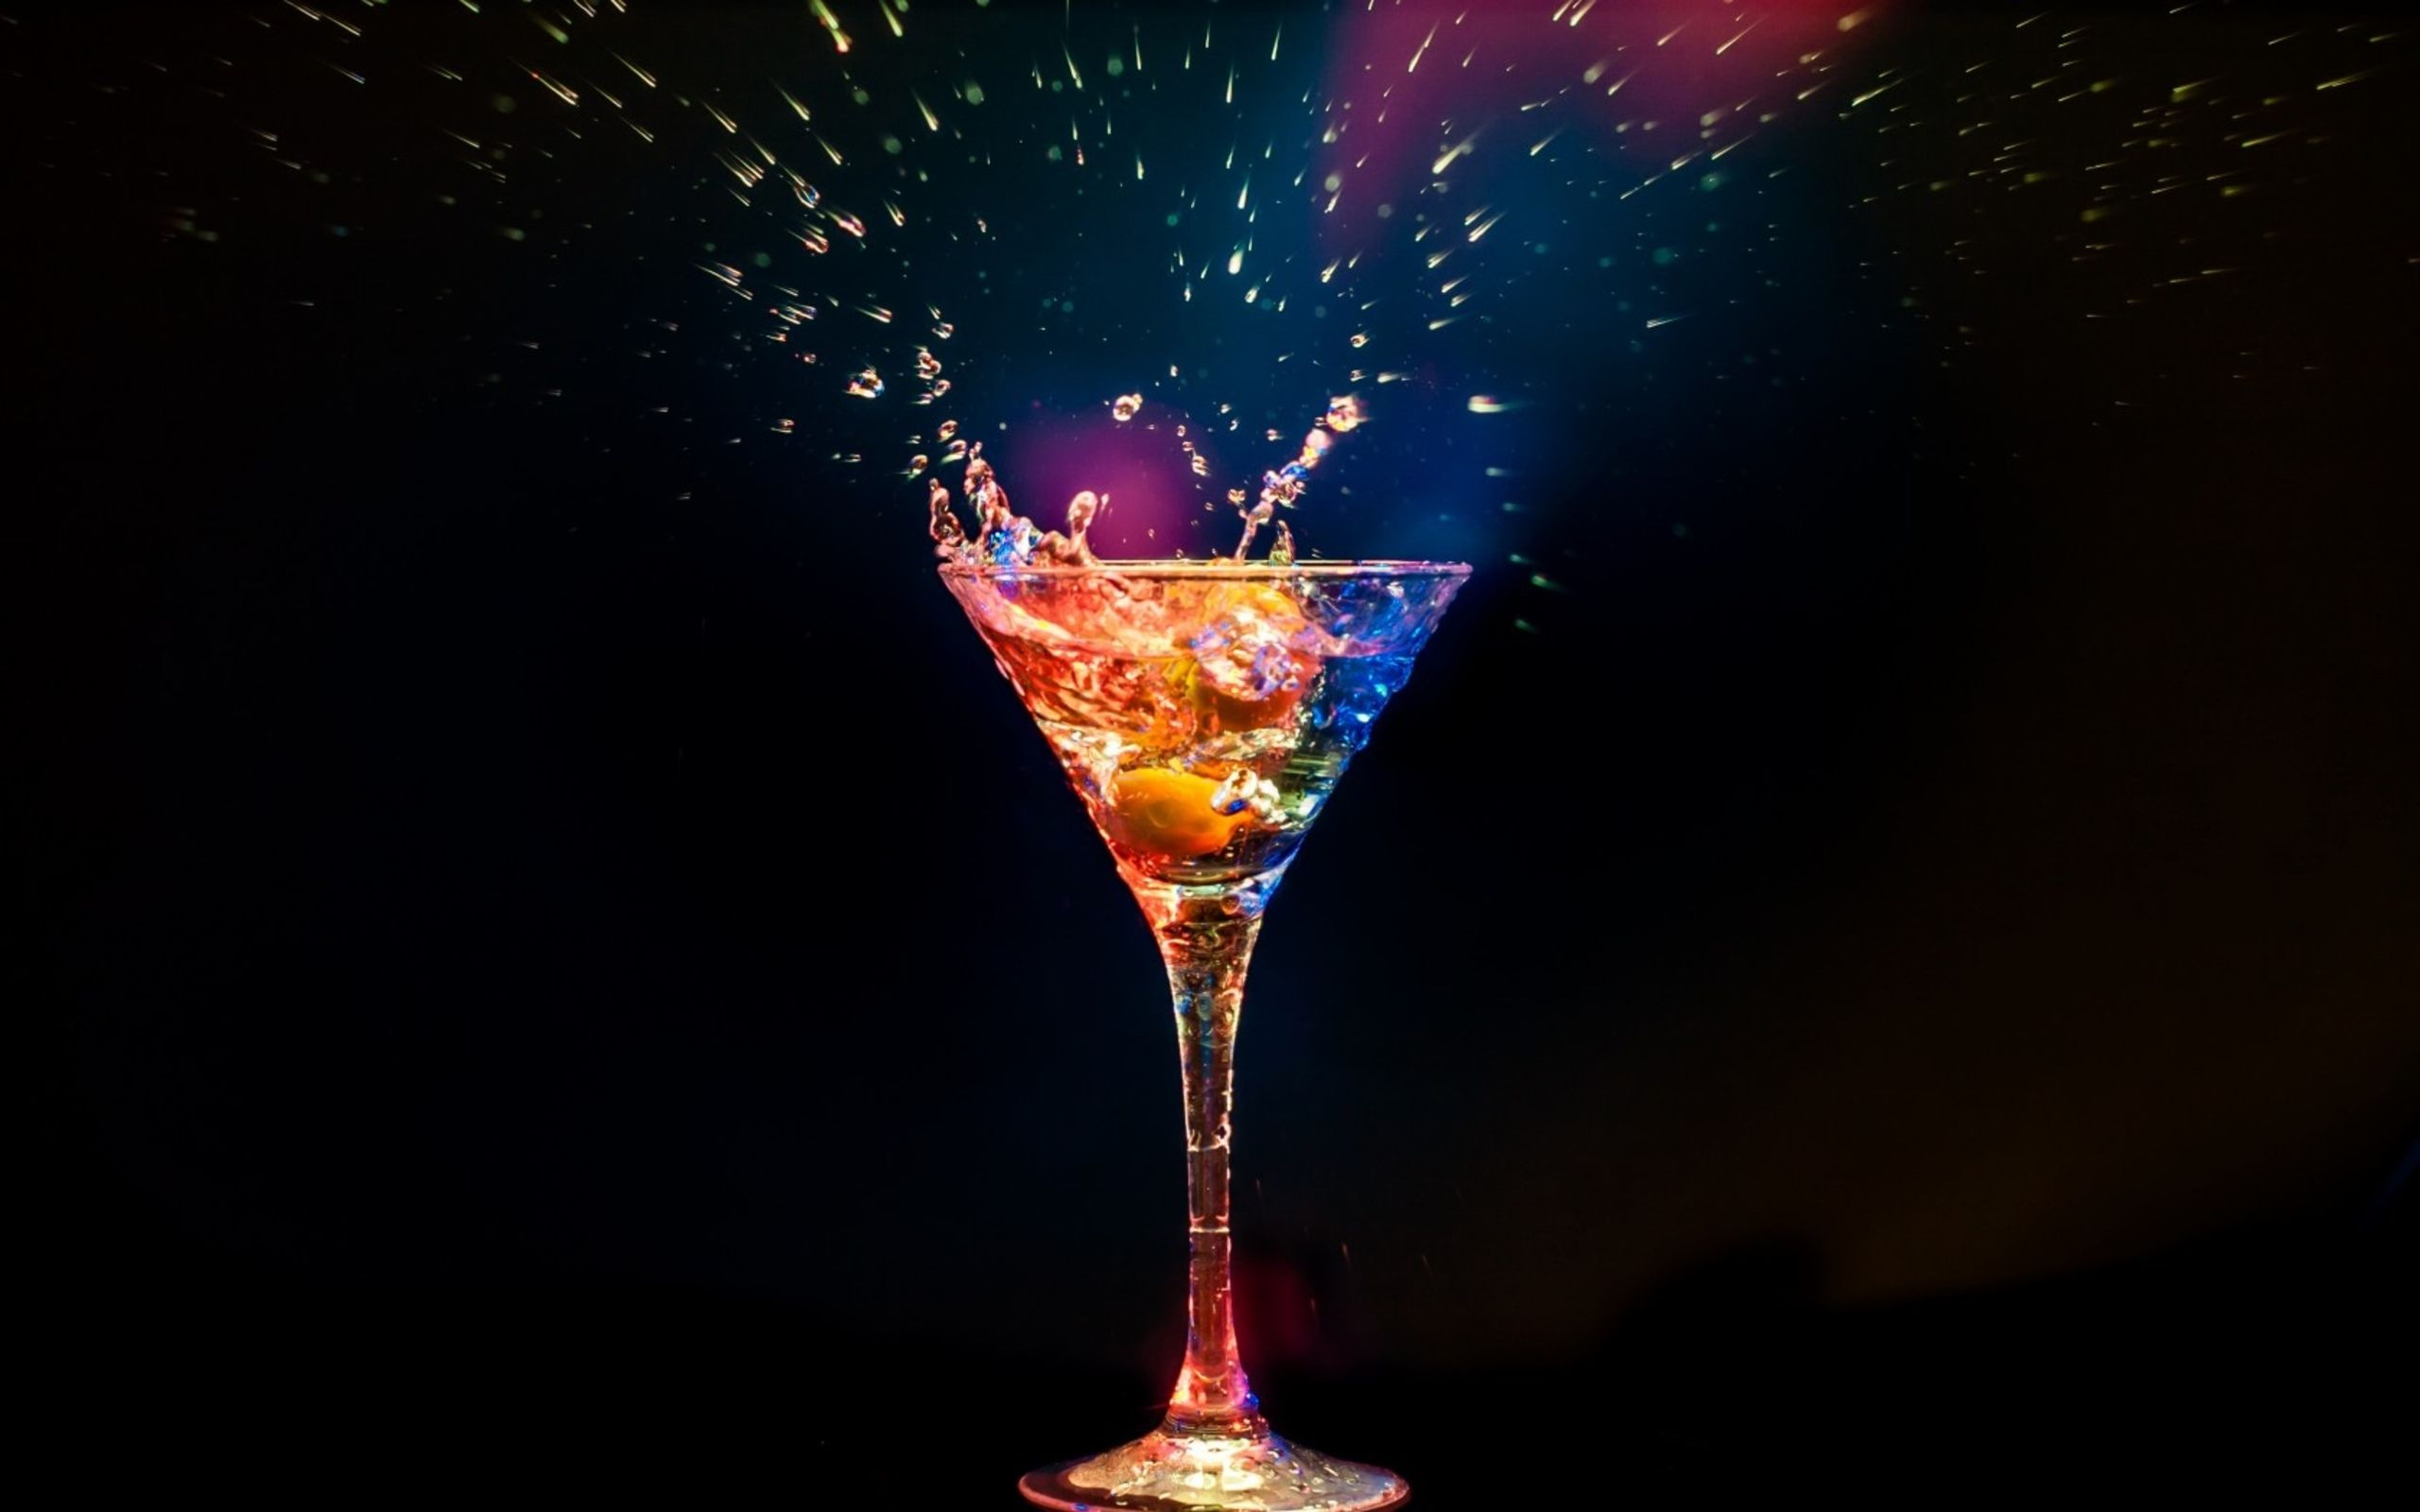 2560x1600 Cocktail Full HD Wallpaper and Background Image | 2560x1600 | ID:389586